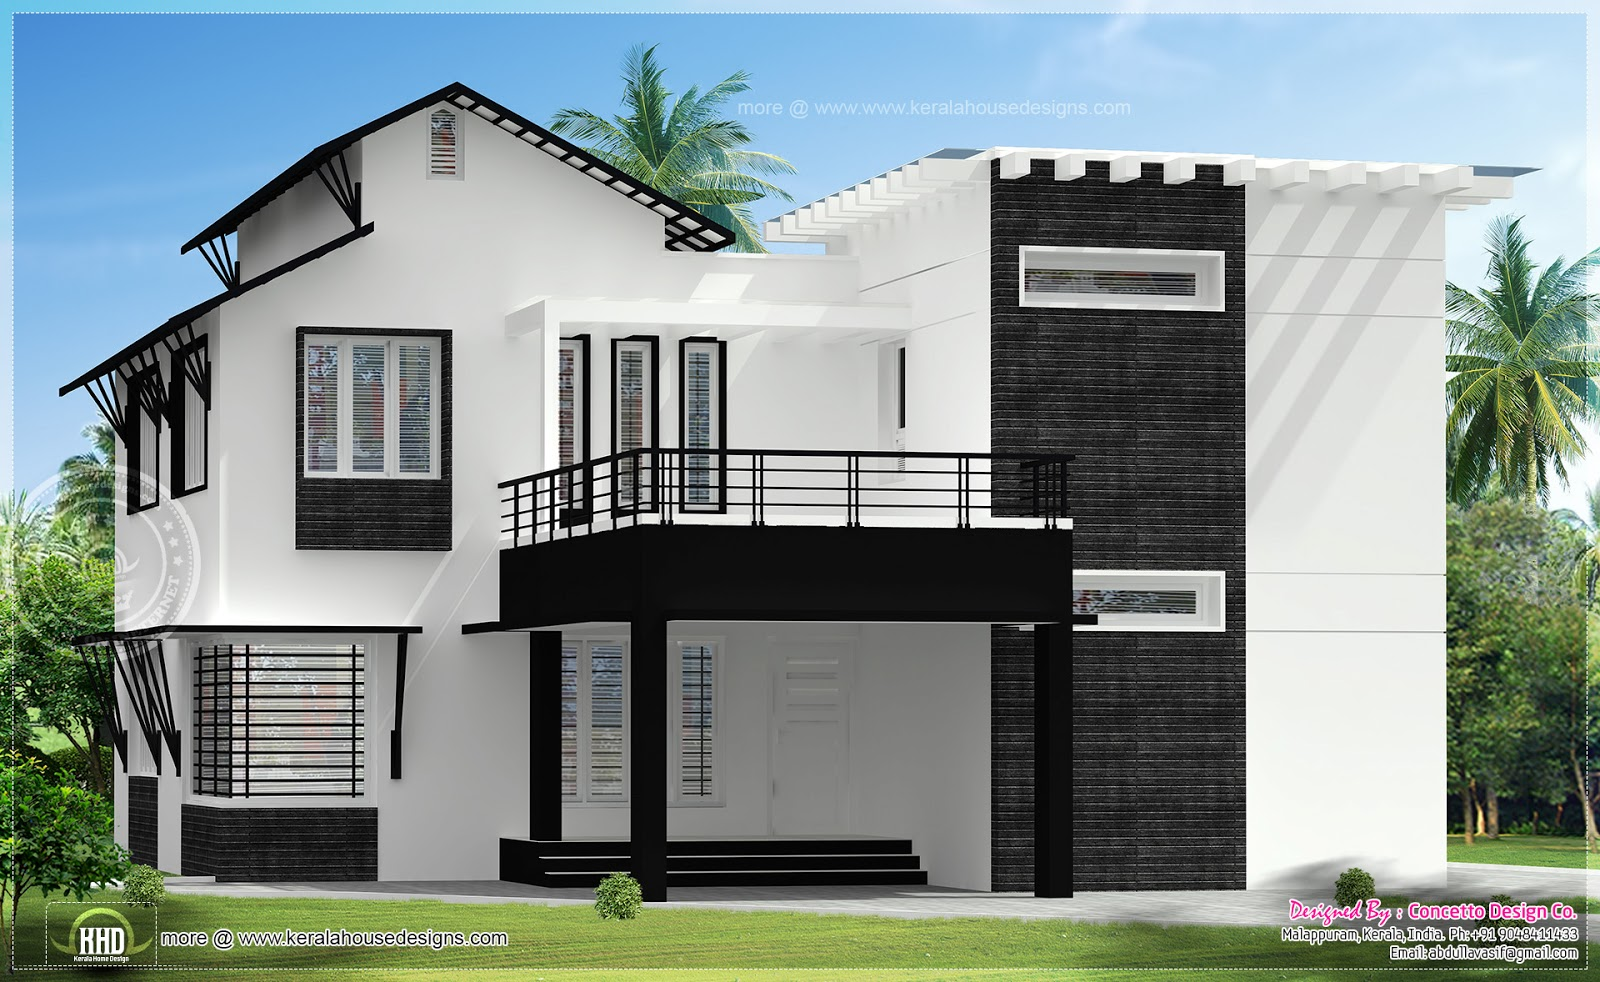 Ground Floor Building Elevation Images : Different house exteriors by concetto design kerala